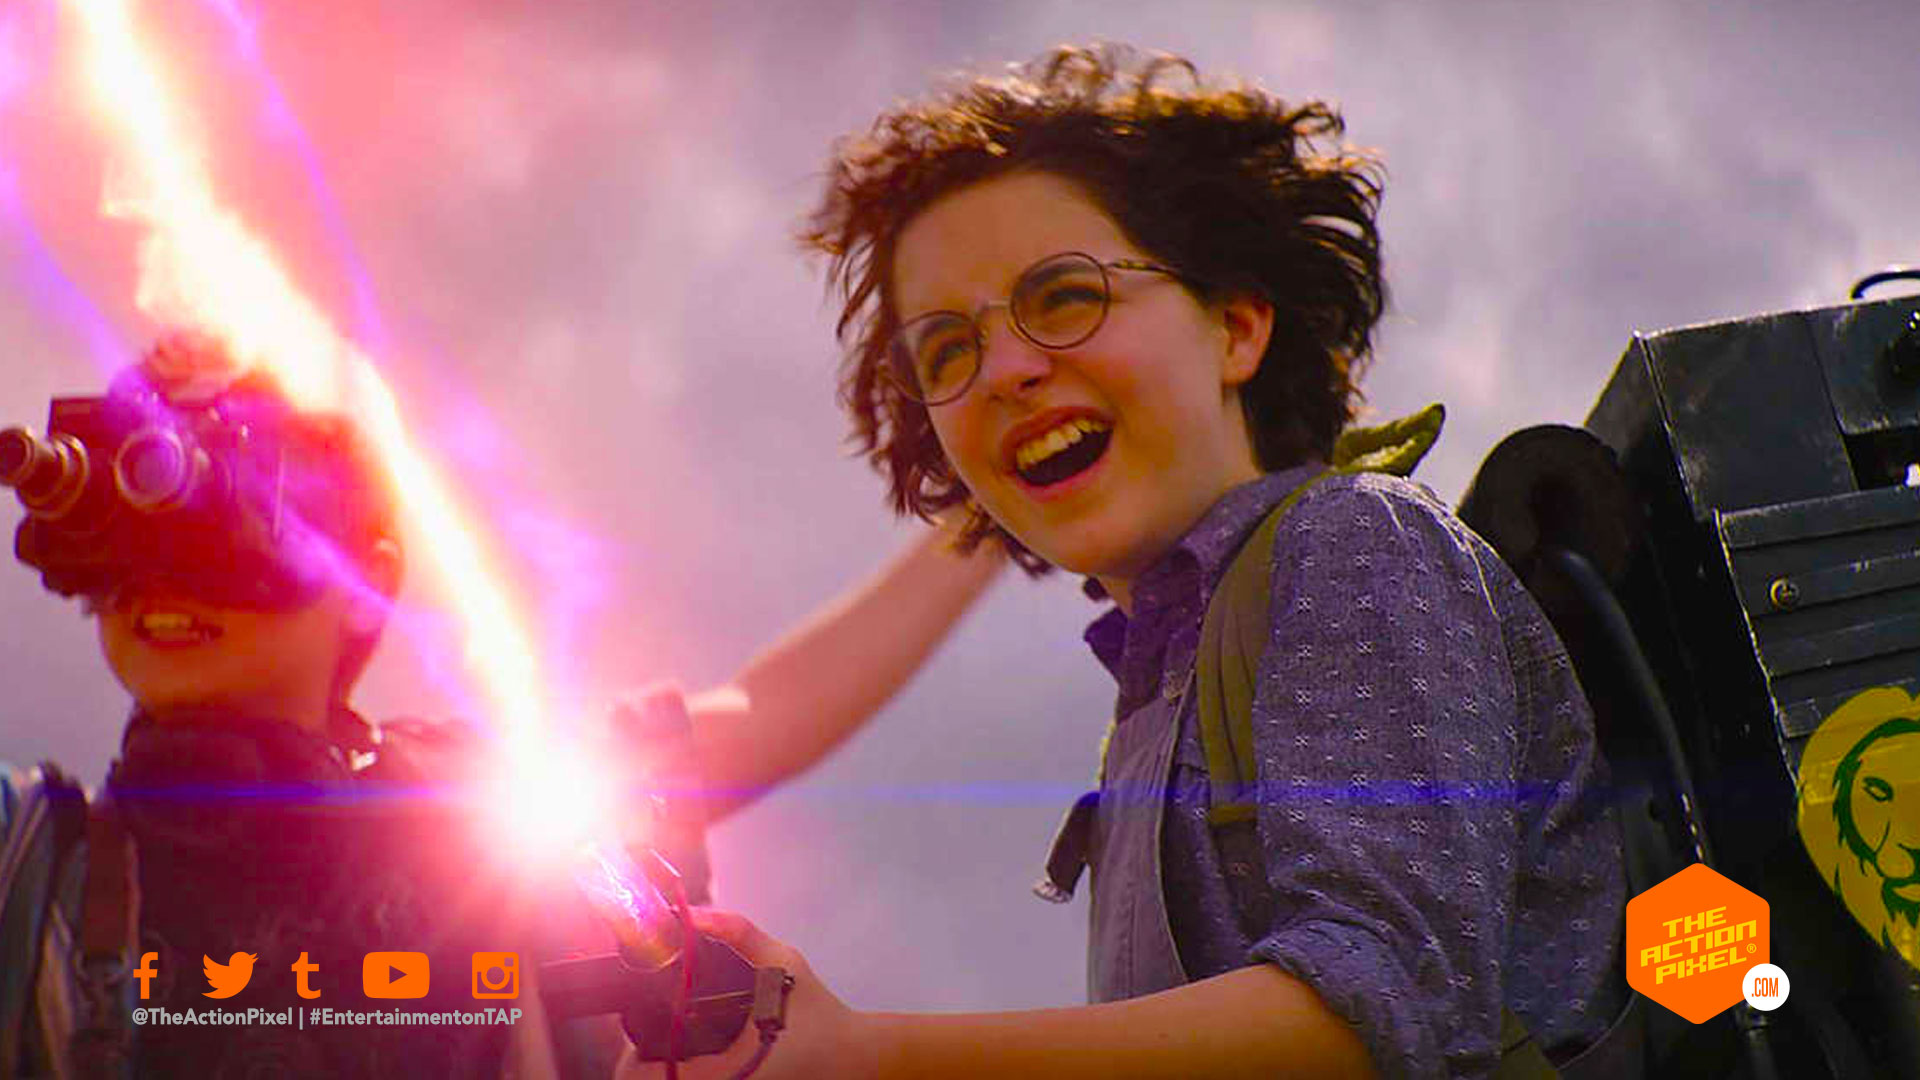 ghostbusters: afterlife, ghostbusters, ghostbusters afterlife, ghostbusters afterlife trailer, the action pixel, ecto-1, sony pictures, entertainment on tap, the action pixel, featured,